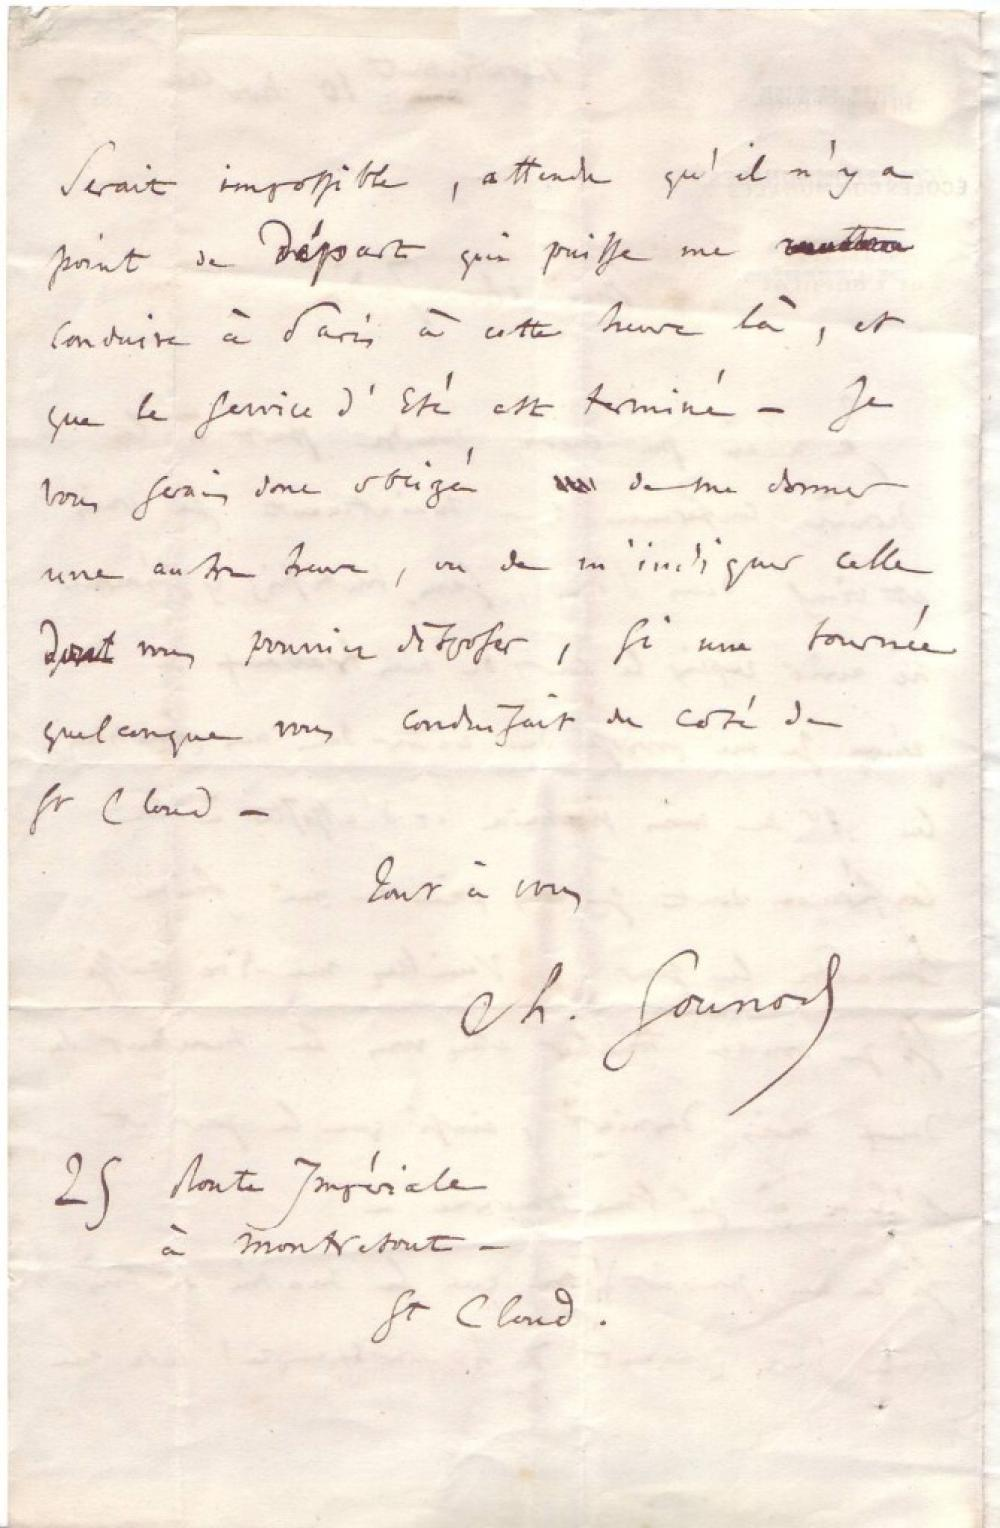 GOUNOD, CHARLES. Autograph Letter Signed,